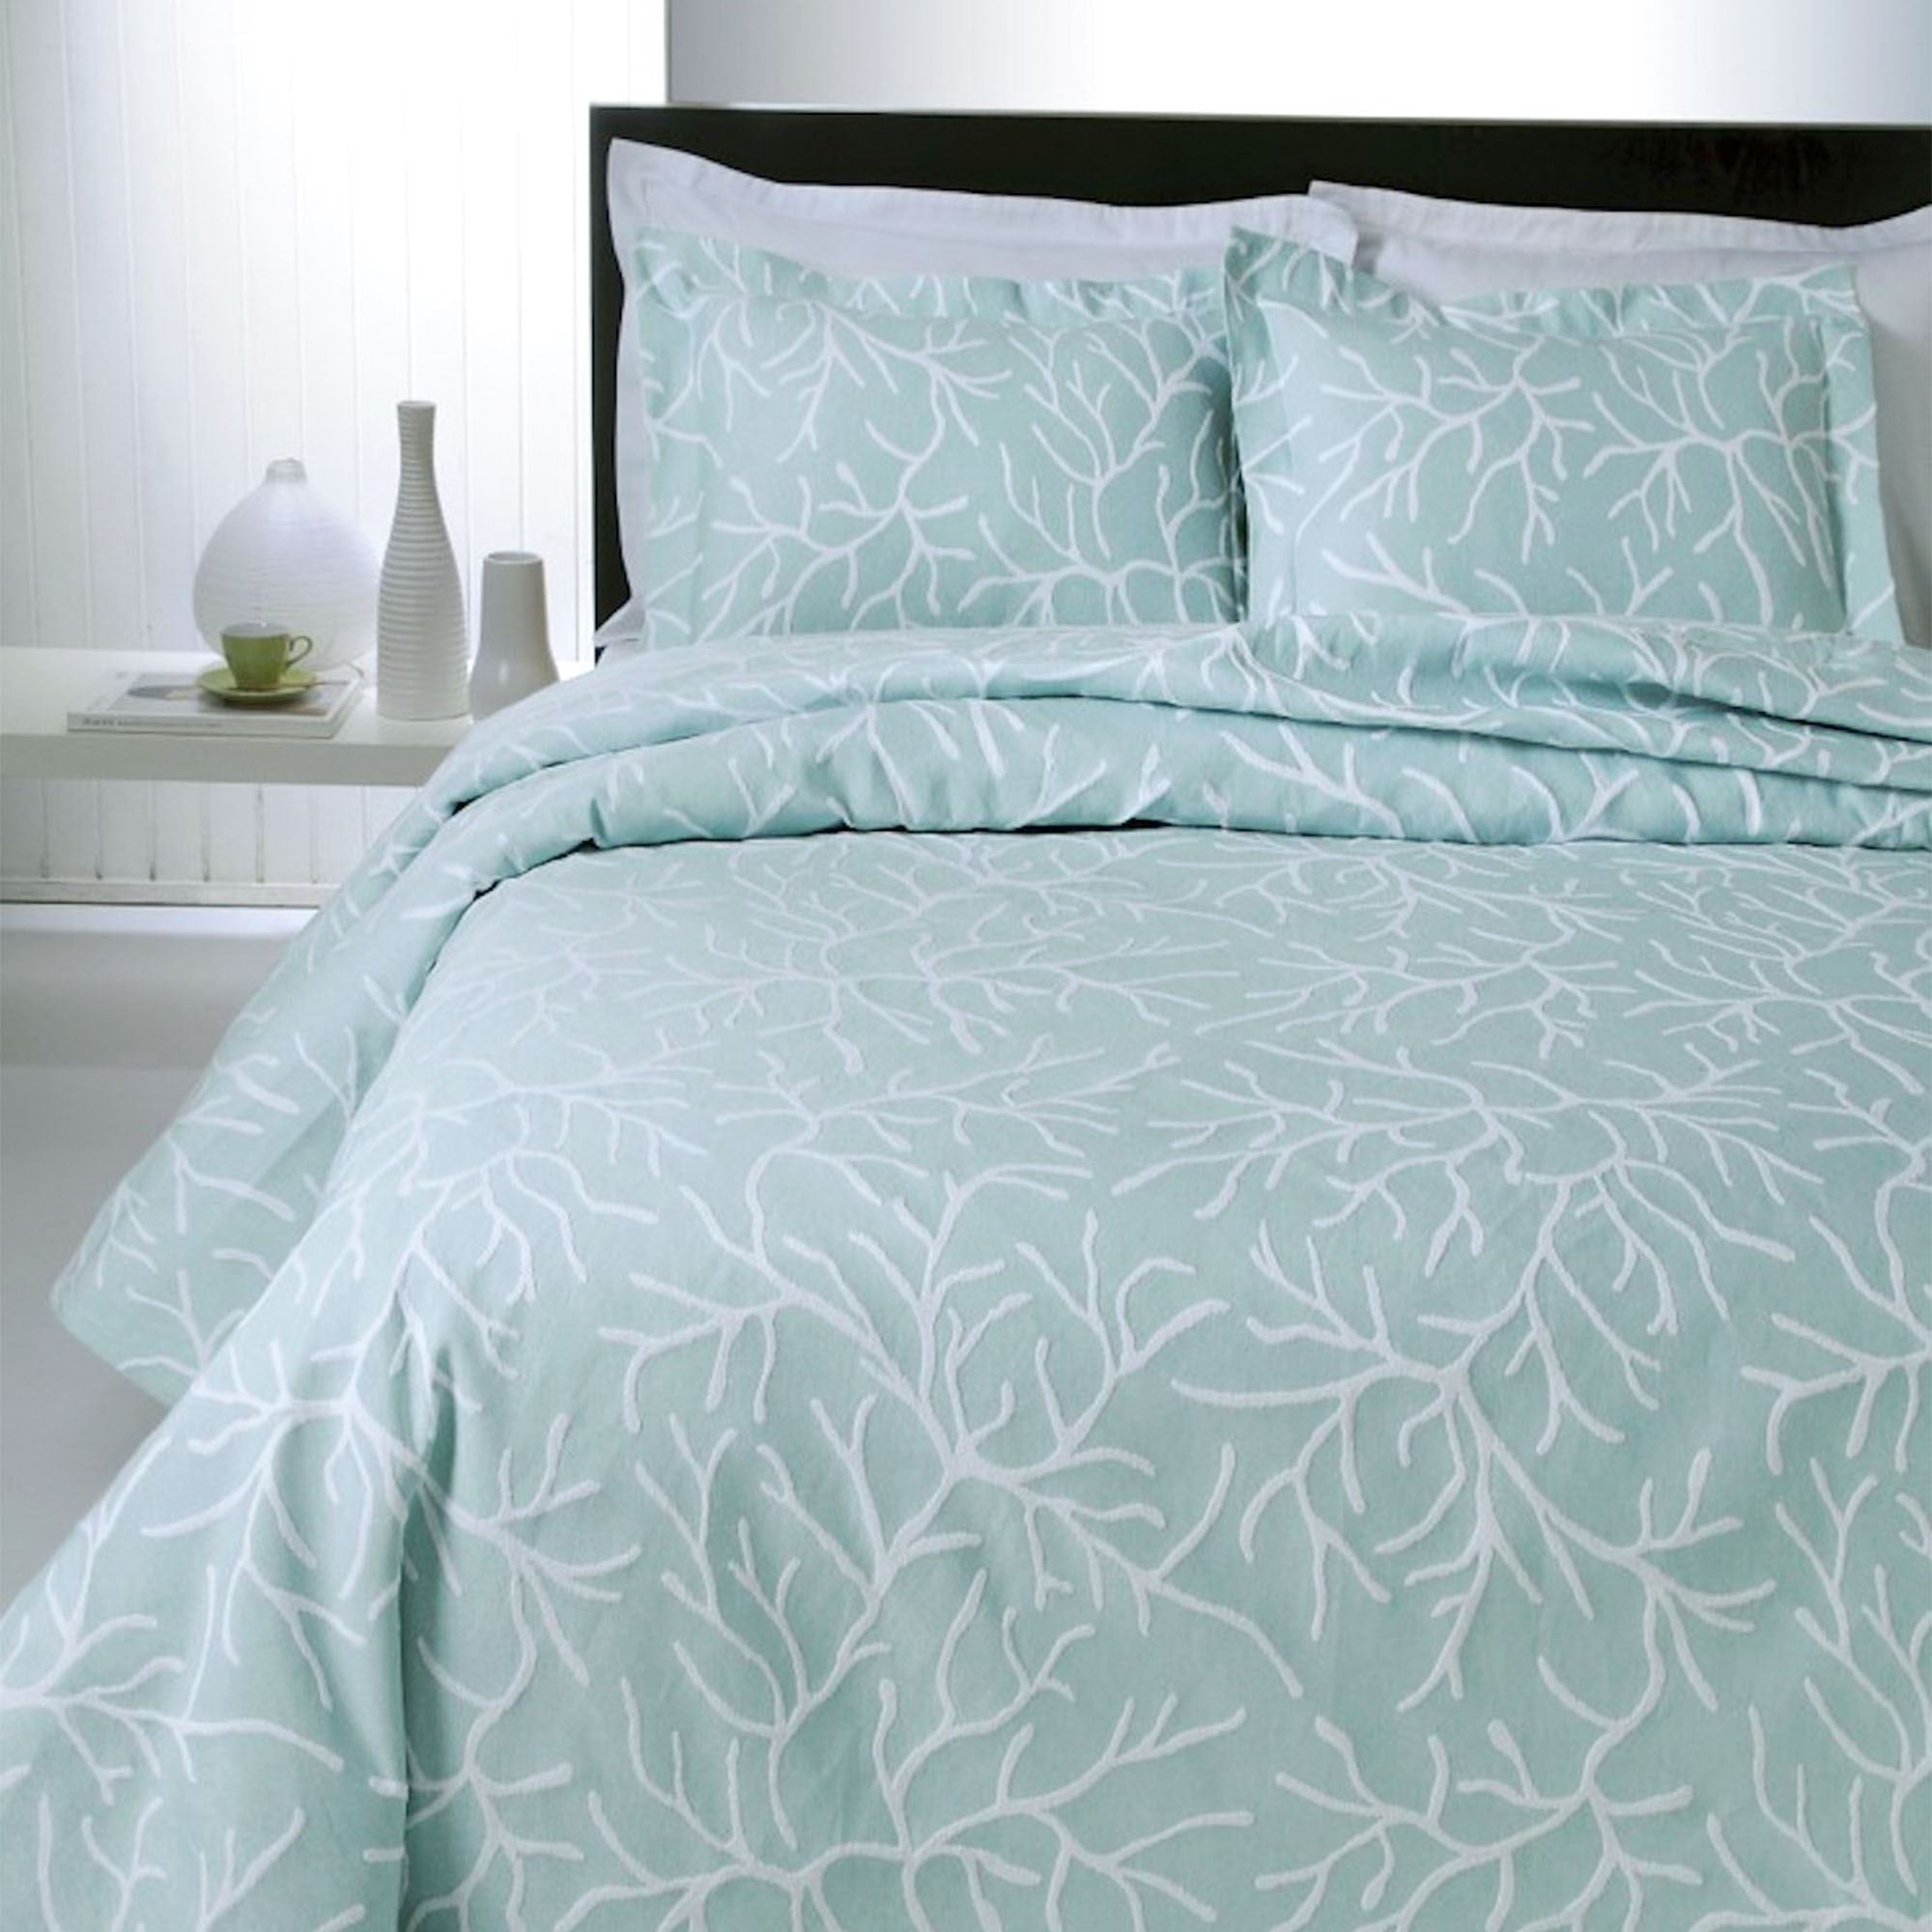 Coral Delight Coastal Woven Matelasse Coverlet Bedding By